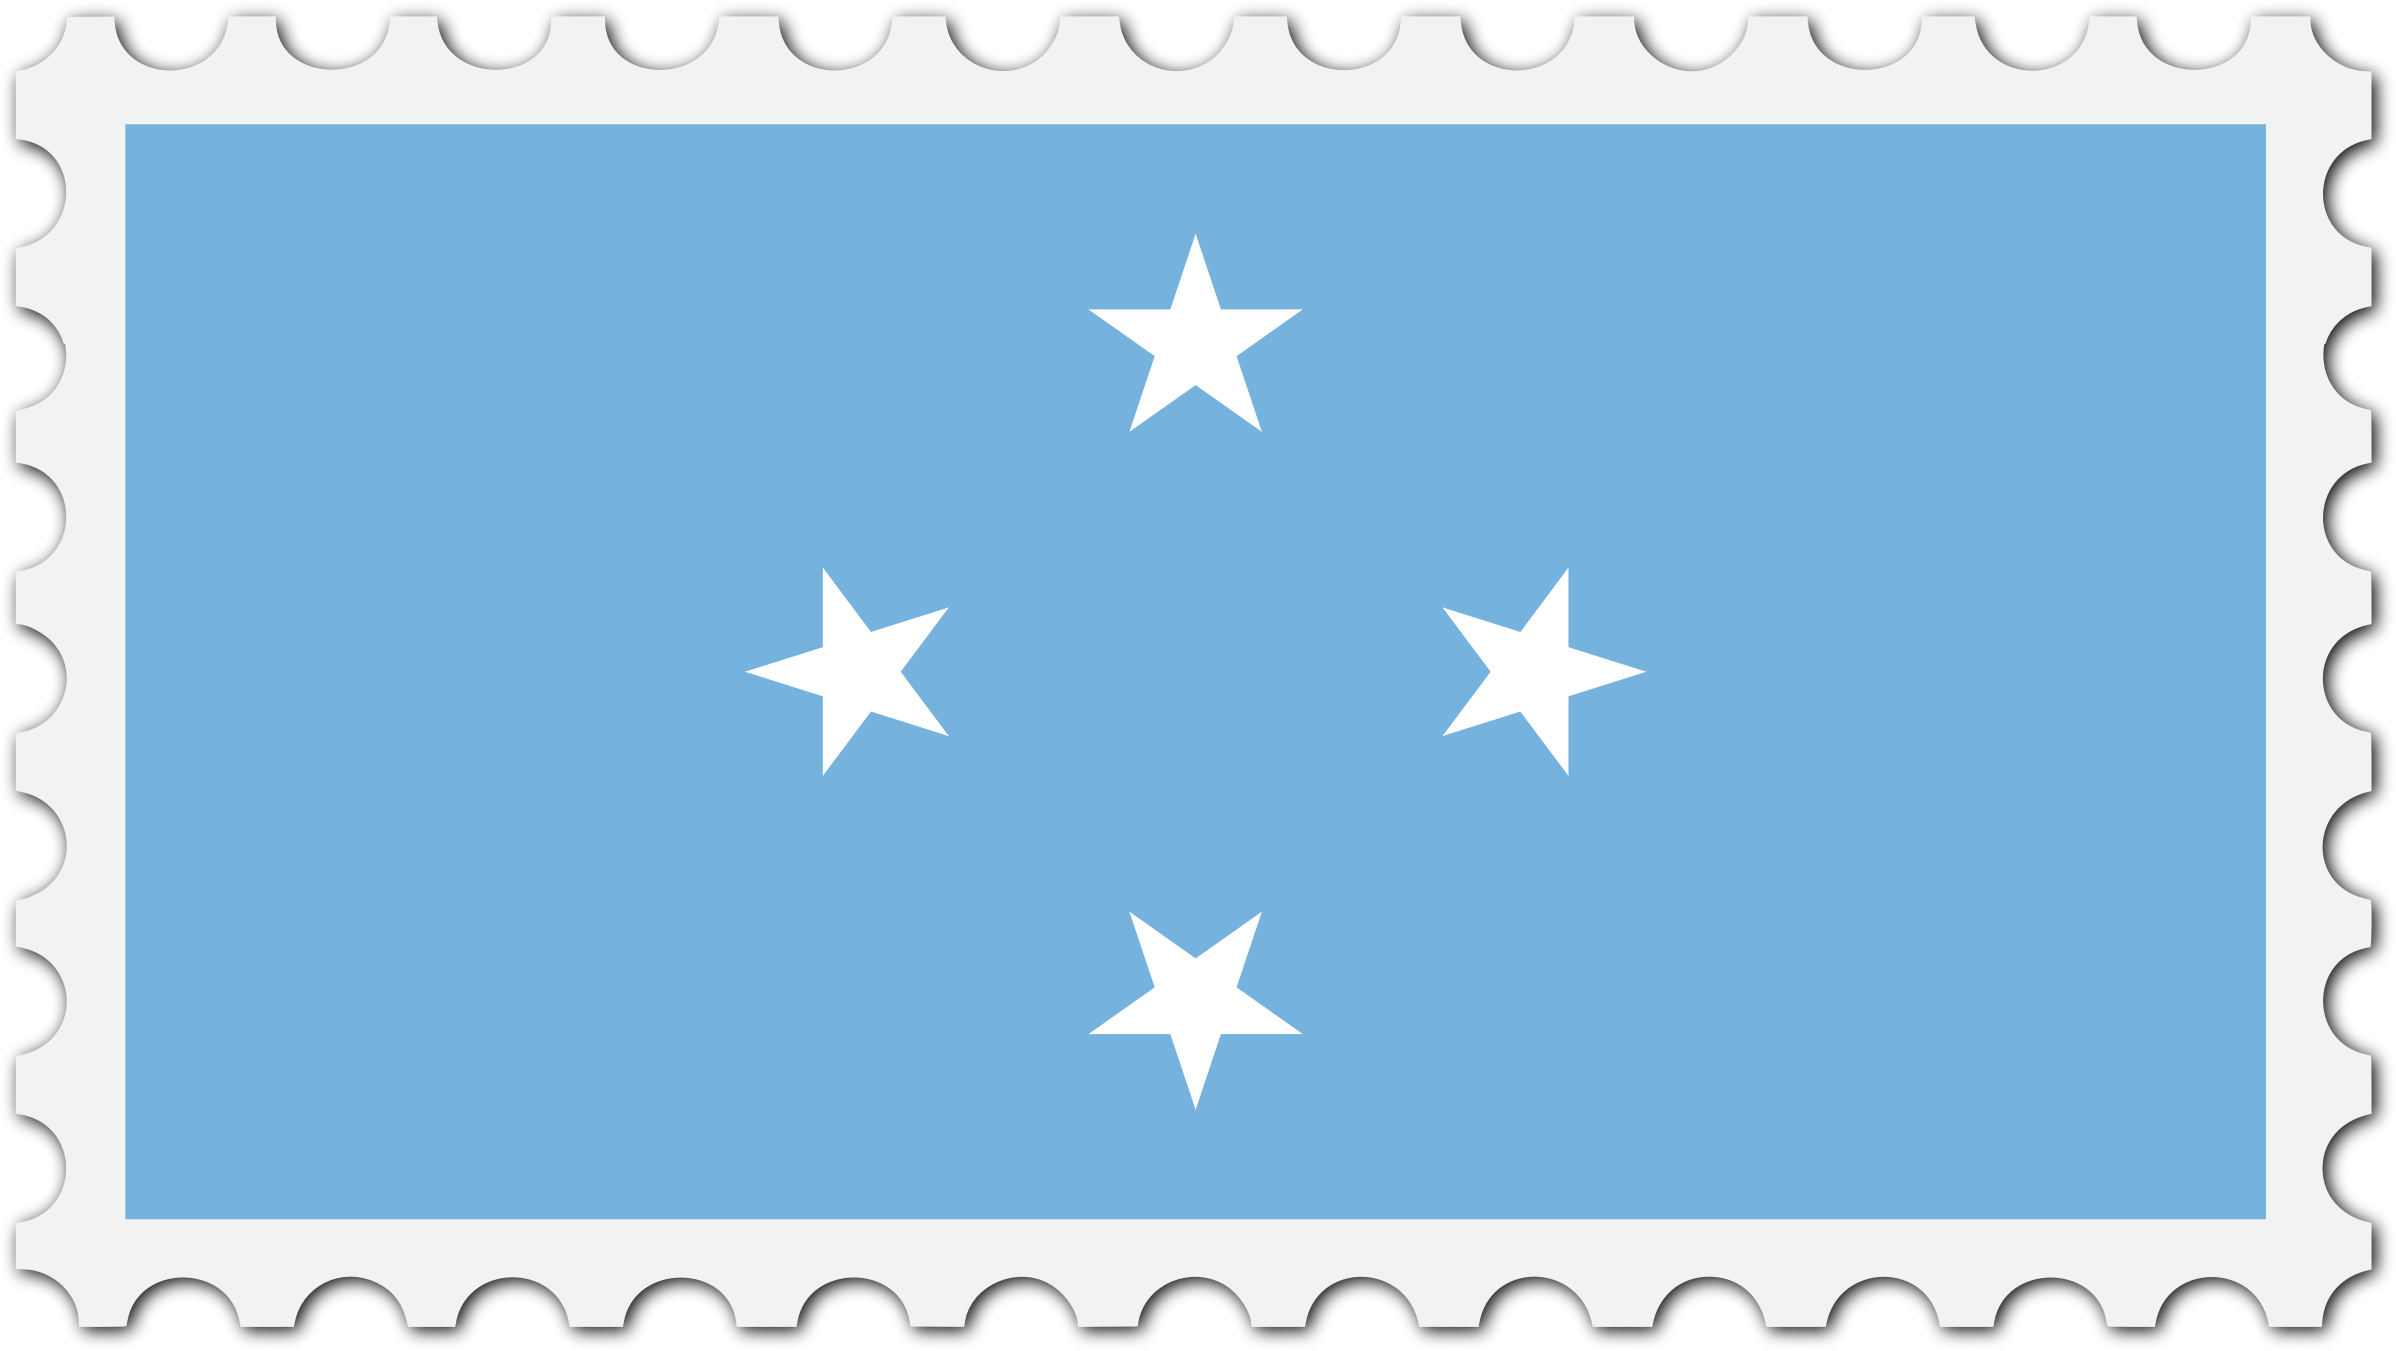 Micronesia flag stamp by Firkin